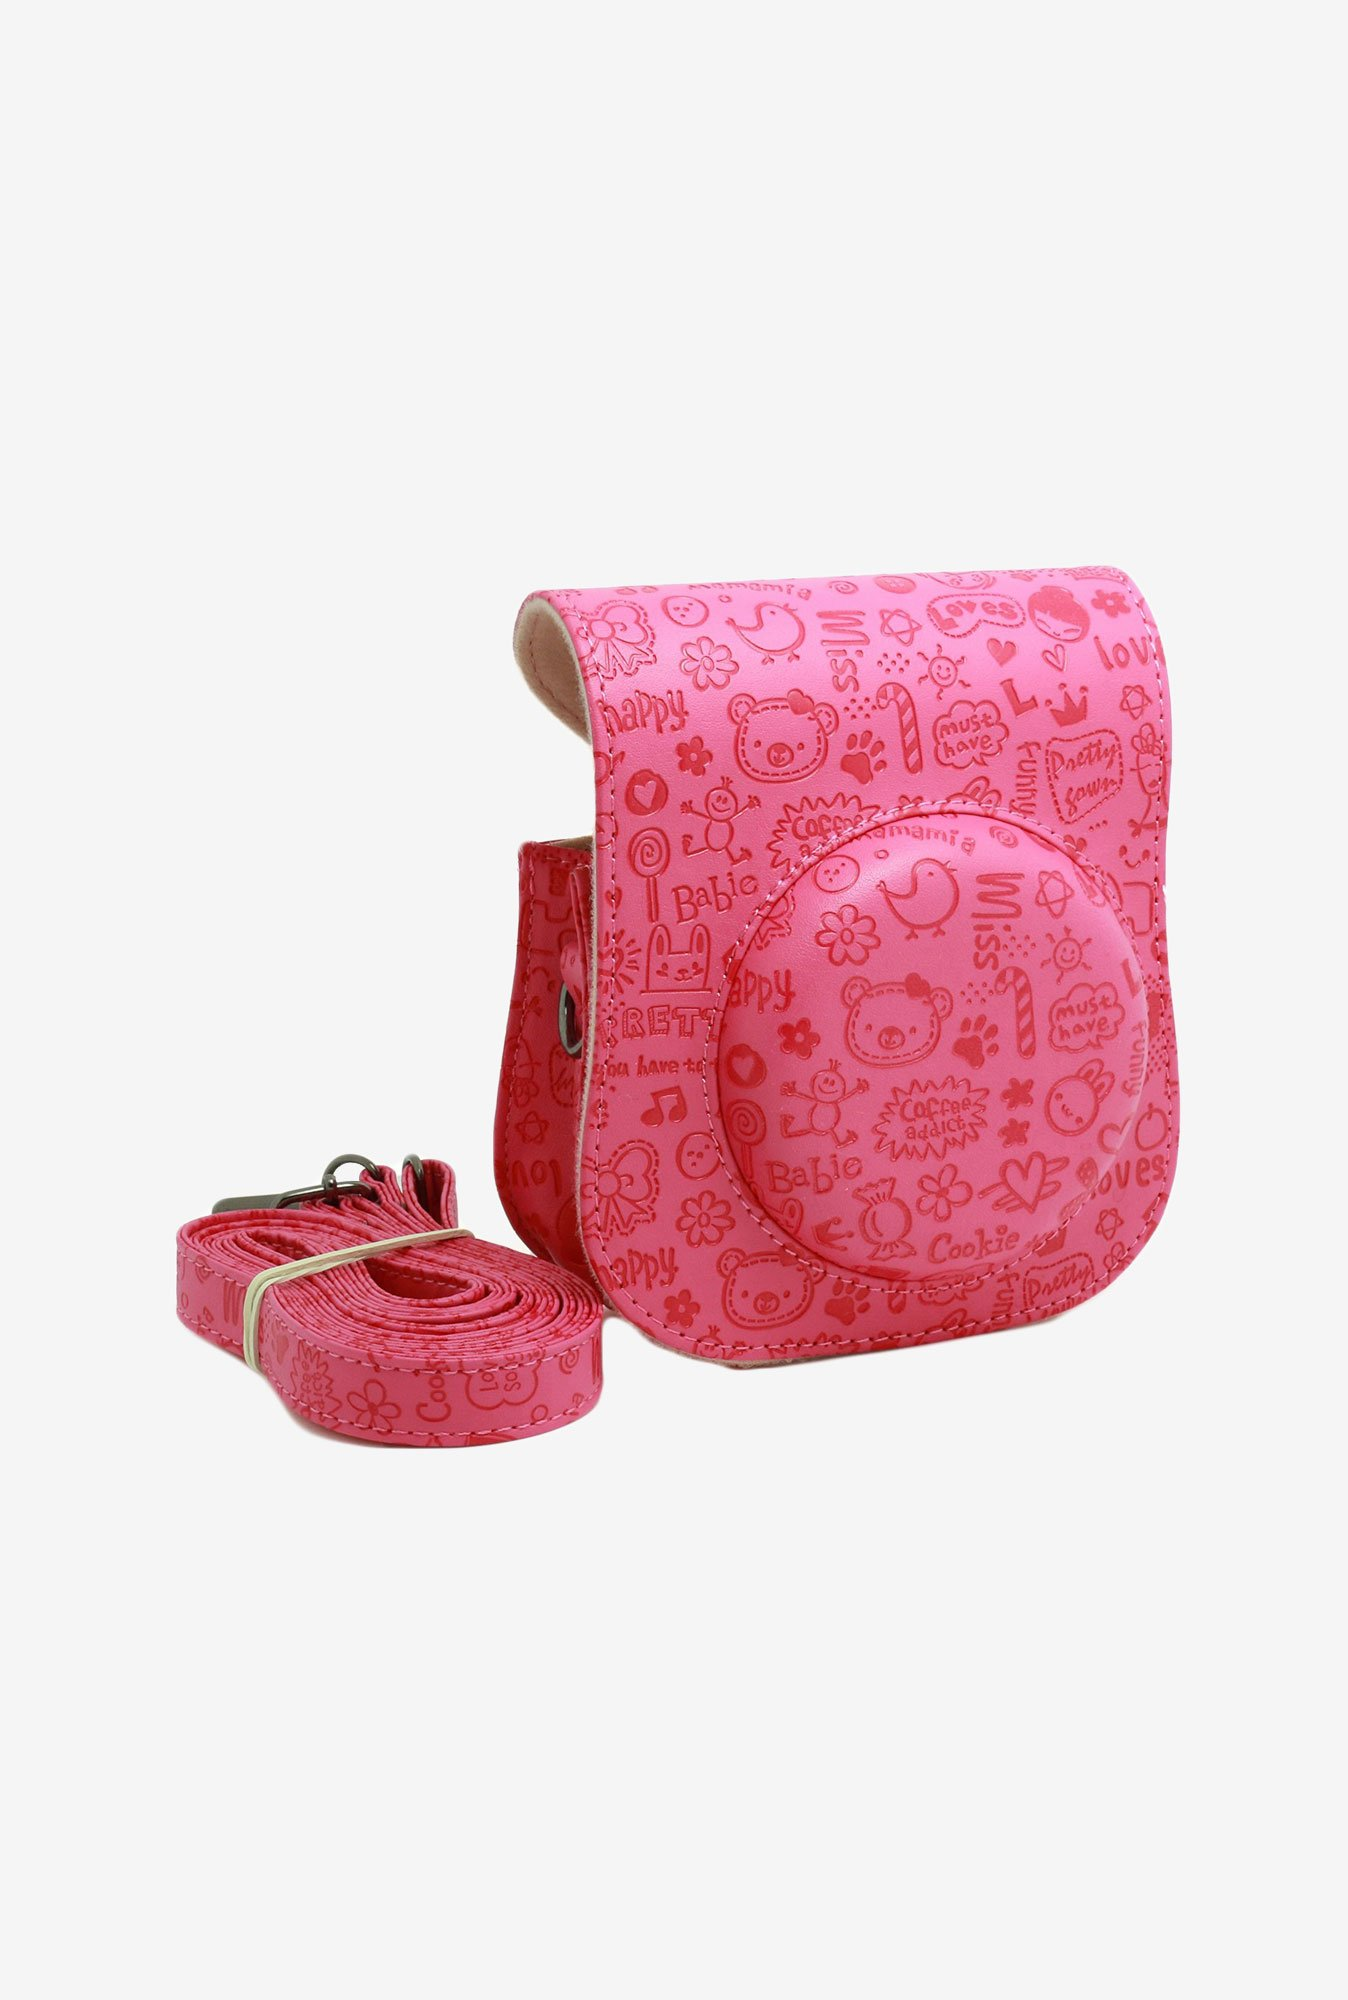 Elegant international Fuji Instax Mini 25 Camera Case (Pink)